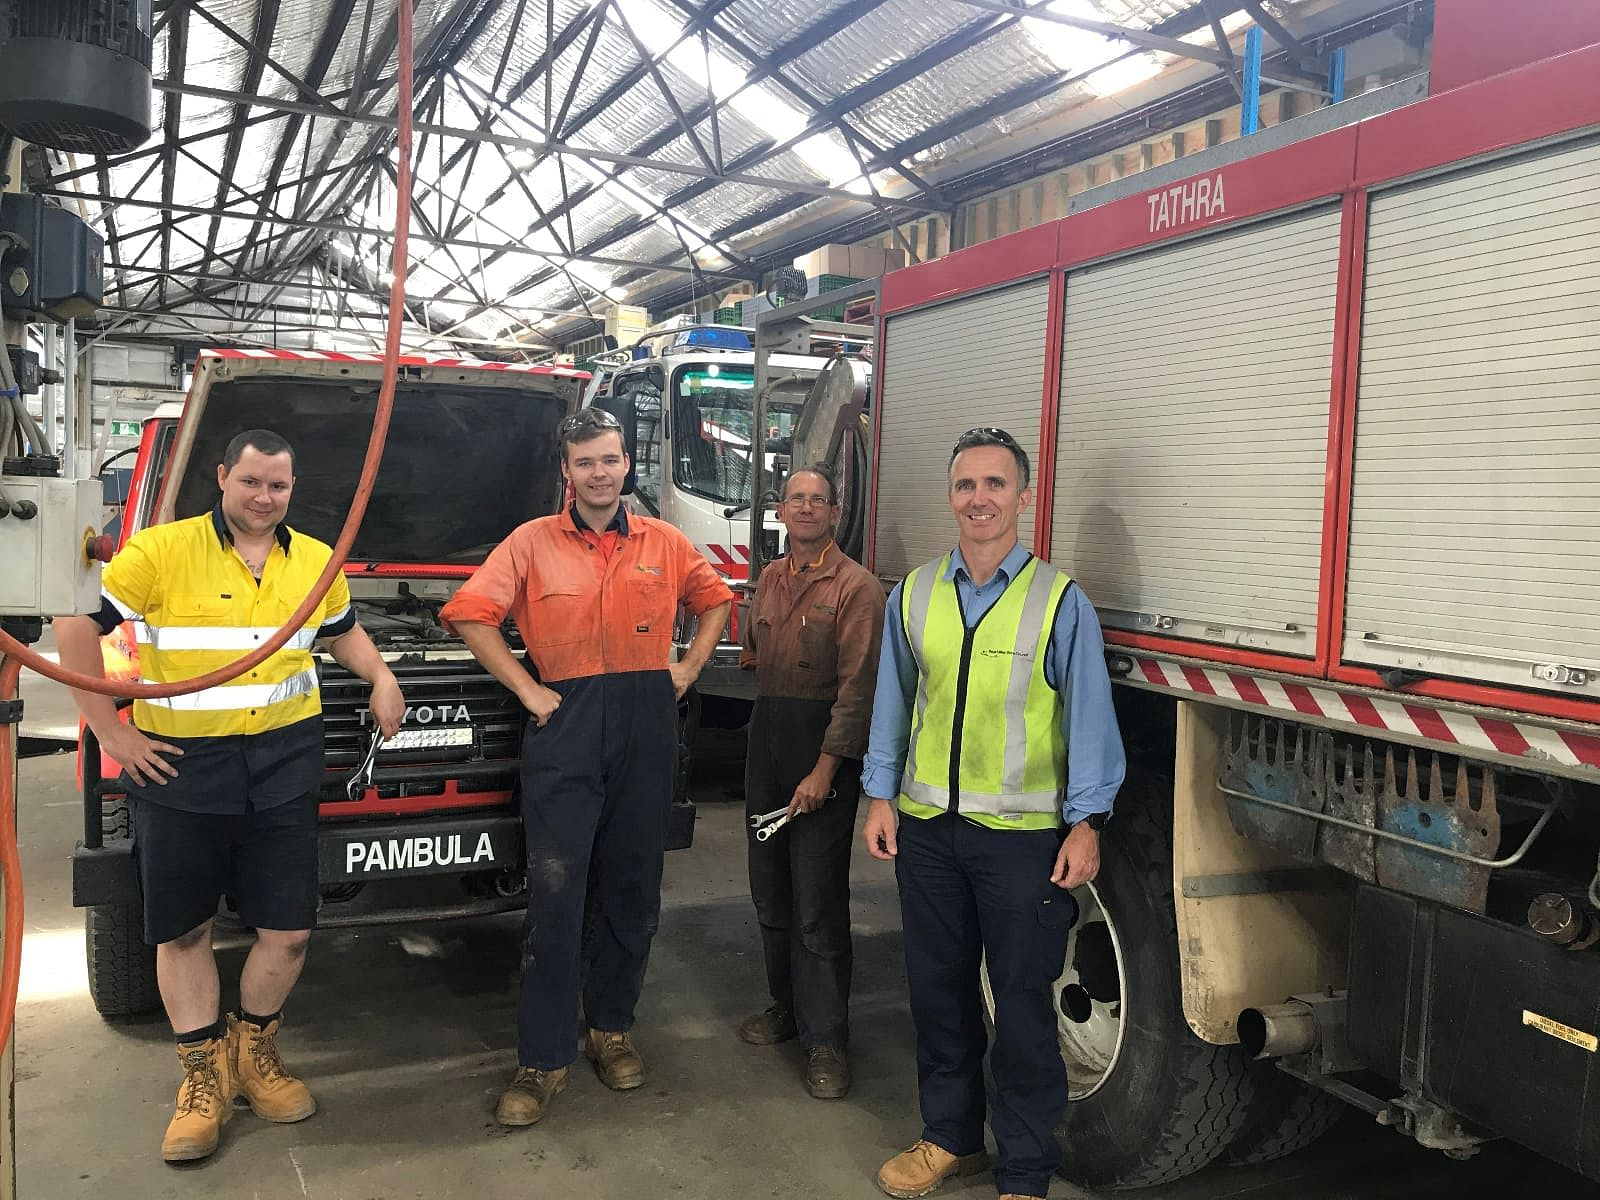 L to R Adam Swarbrick (Mechanic), Zane Bagley (Apprentice), Bruce Summerell (Mechanic) and Sean Baggett (Fleet Supervisor)